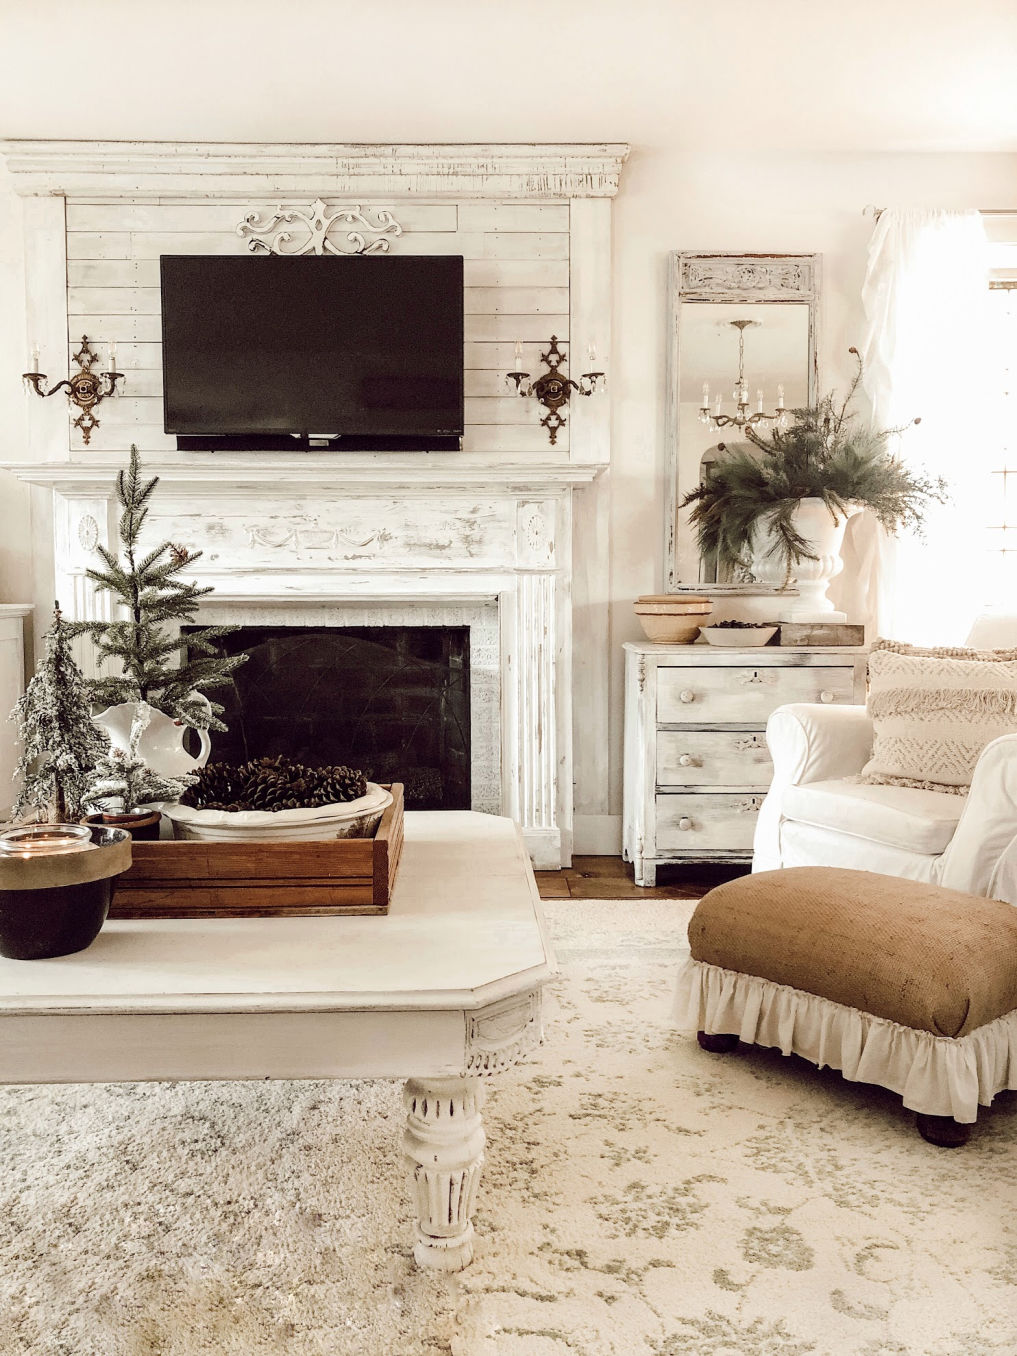 Love the shiplap fireplace wall in this neutral farmhouse family room #farmhousedecor #shiplap #fireplace #manteldecor #farmhousestyle #neutraldecor #christmasdecor #farmhousechristmas